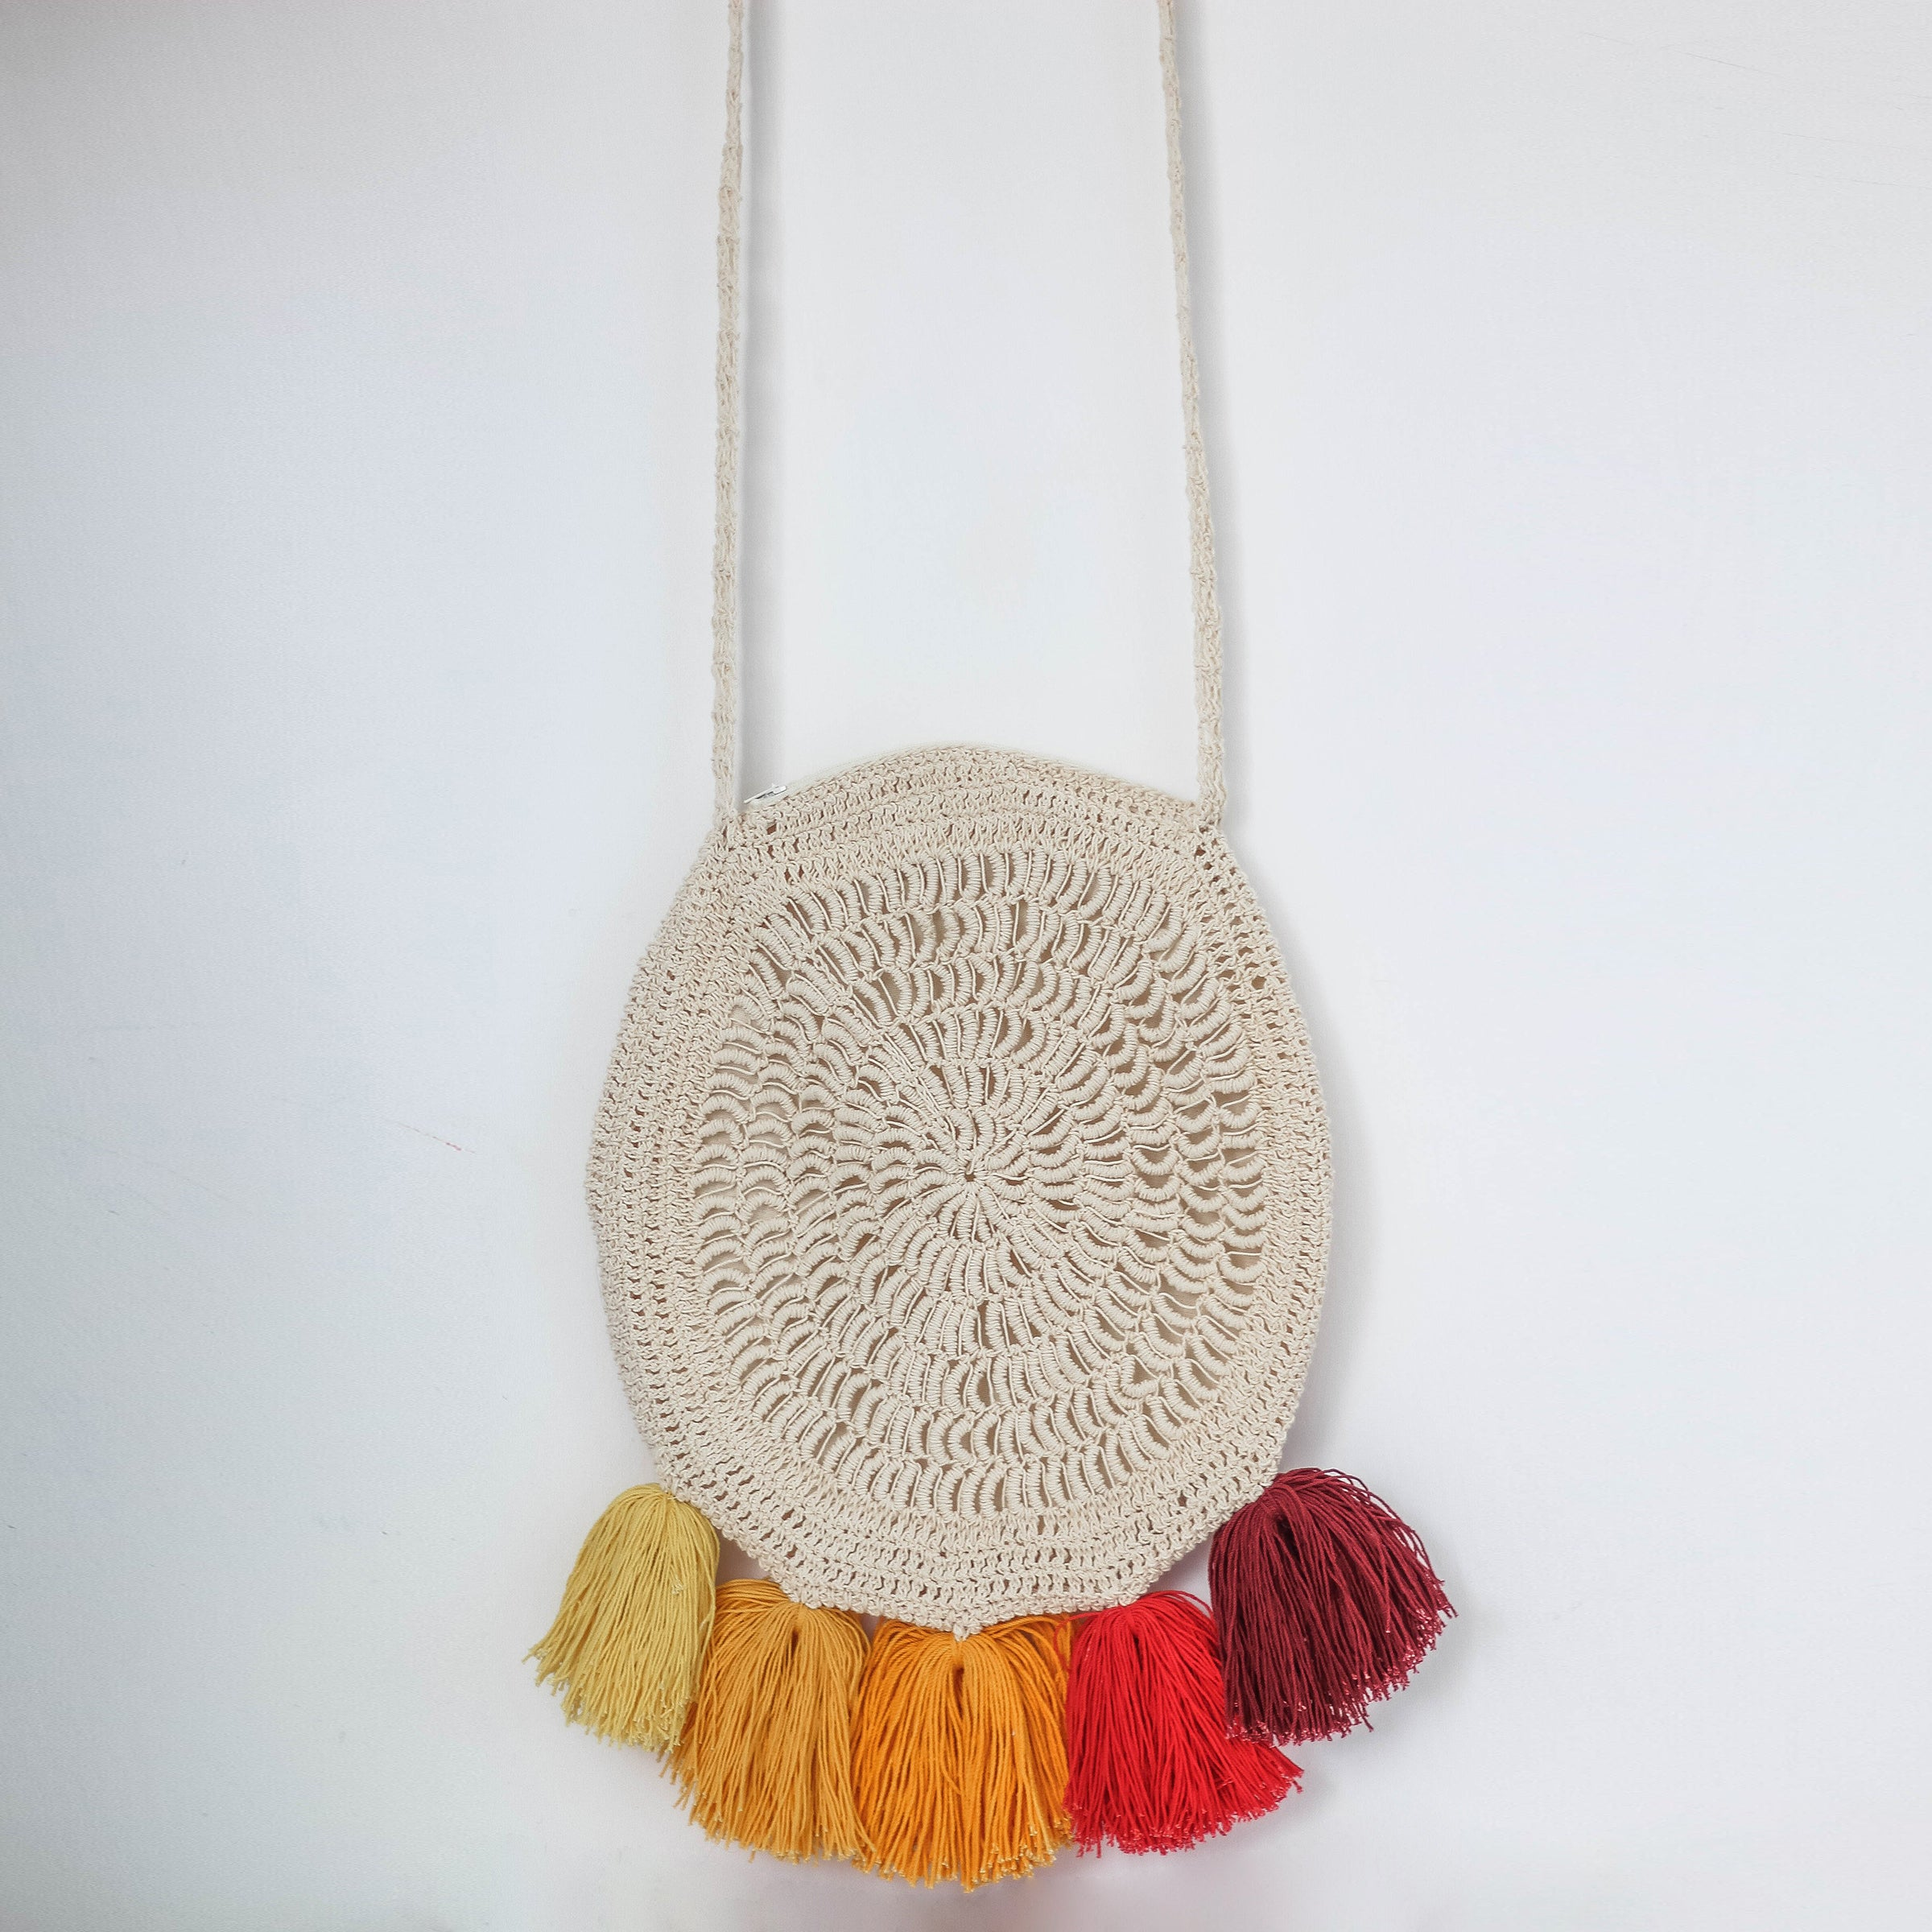 ... Macrame bag natural color with red 76babecd4